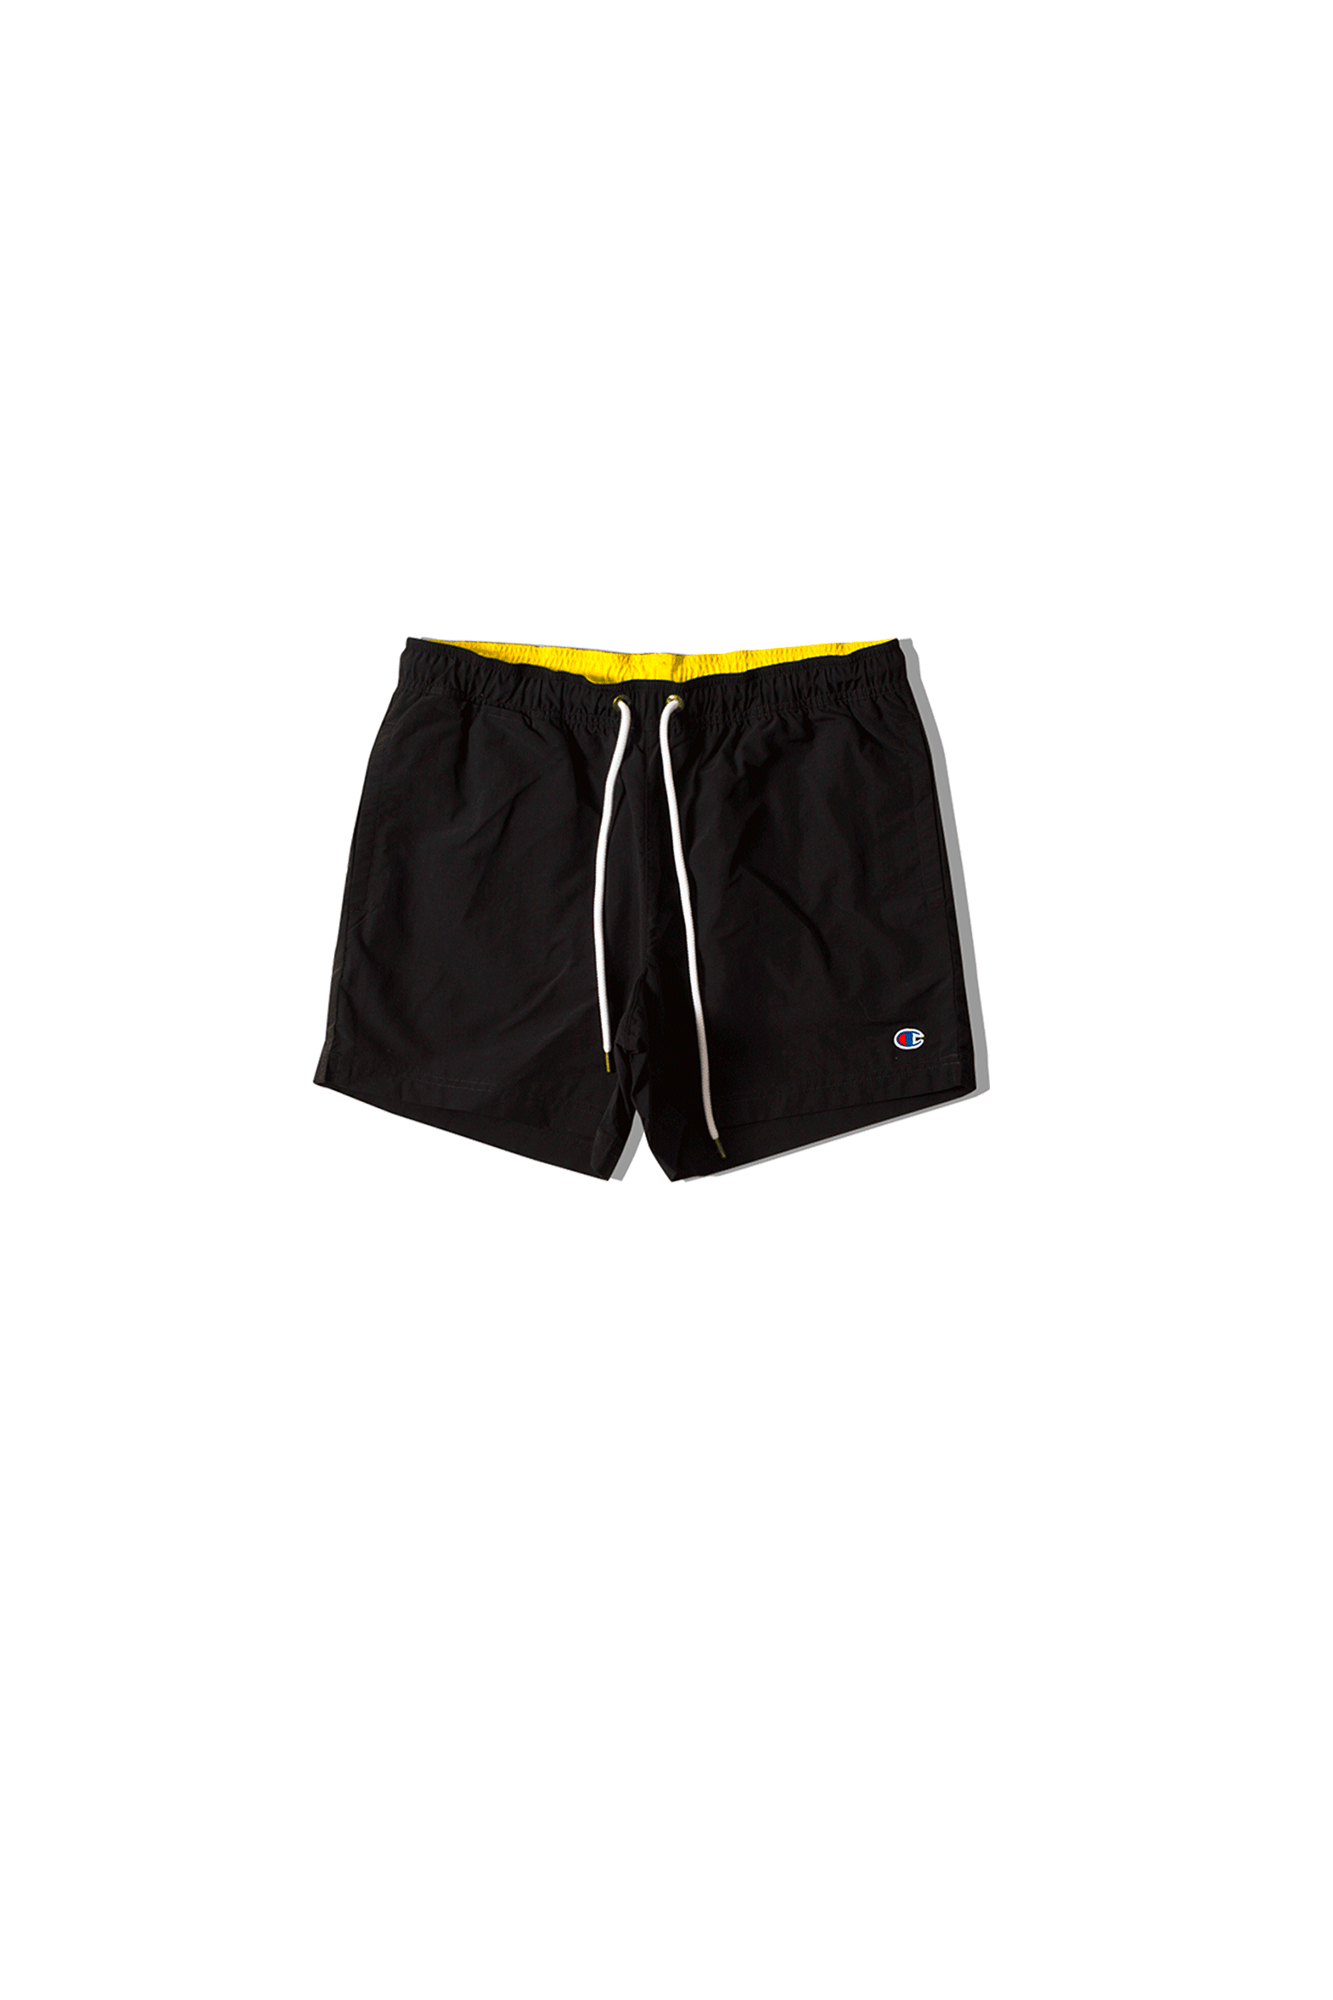 Champion Shorts Beachshort Black 213090#KK001#C0010#XXS - One Block Down